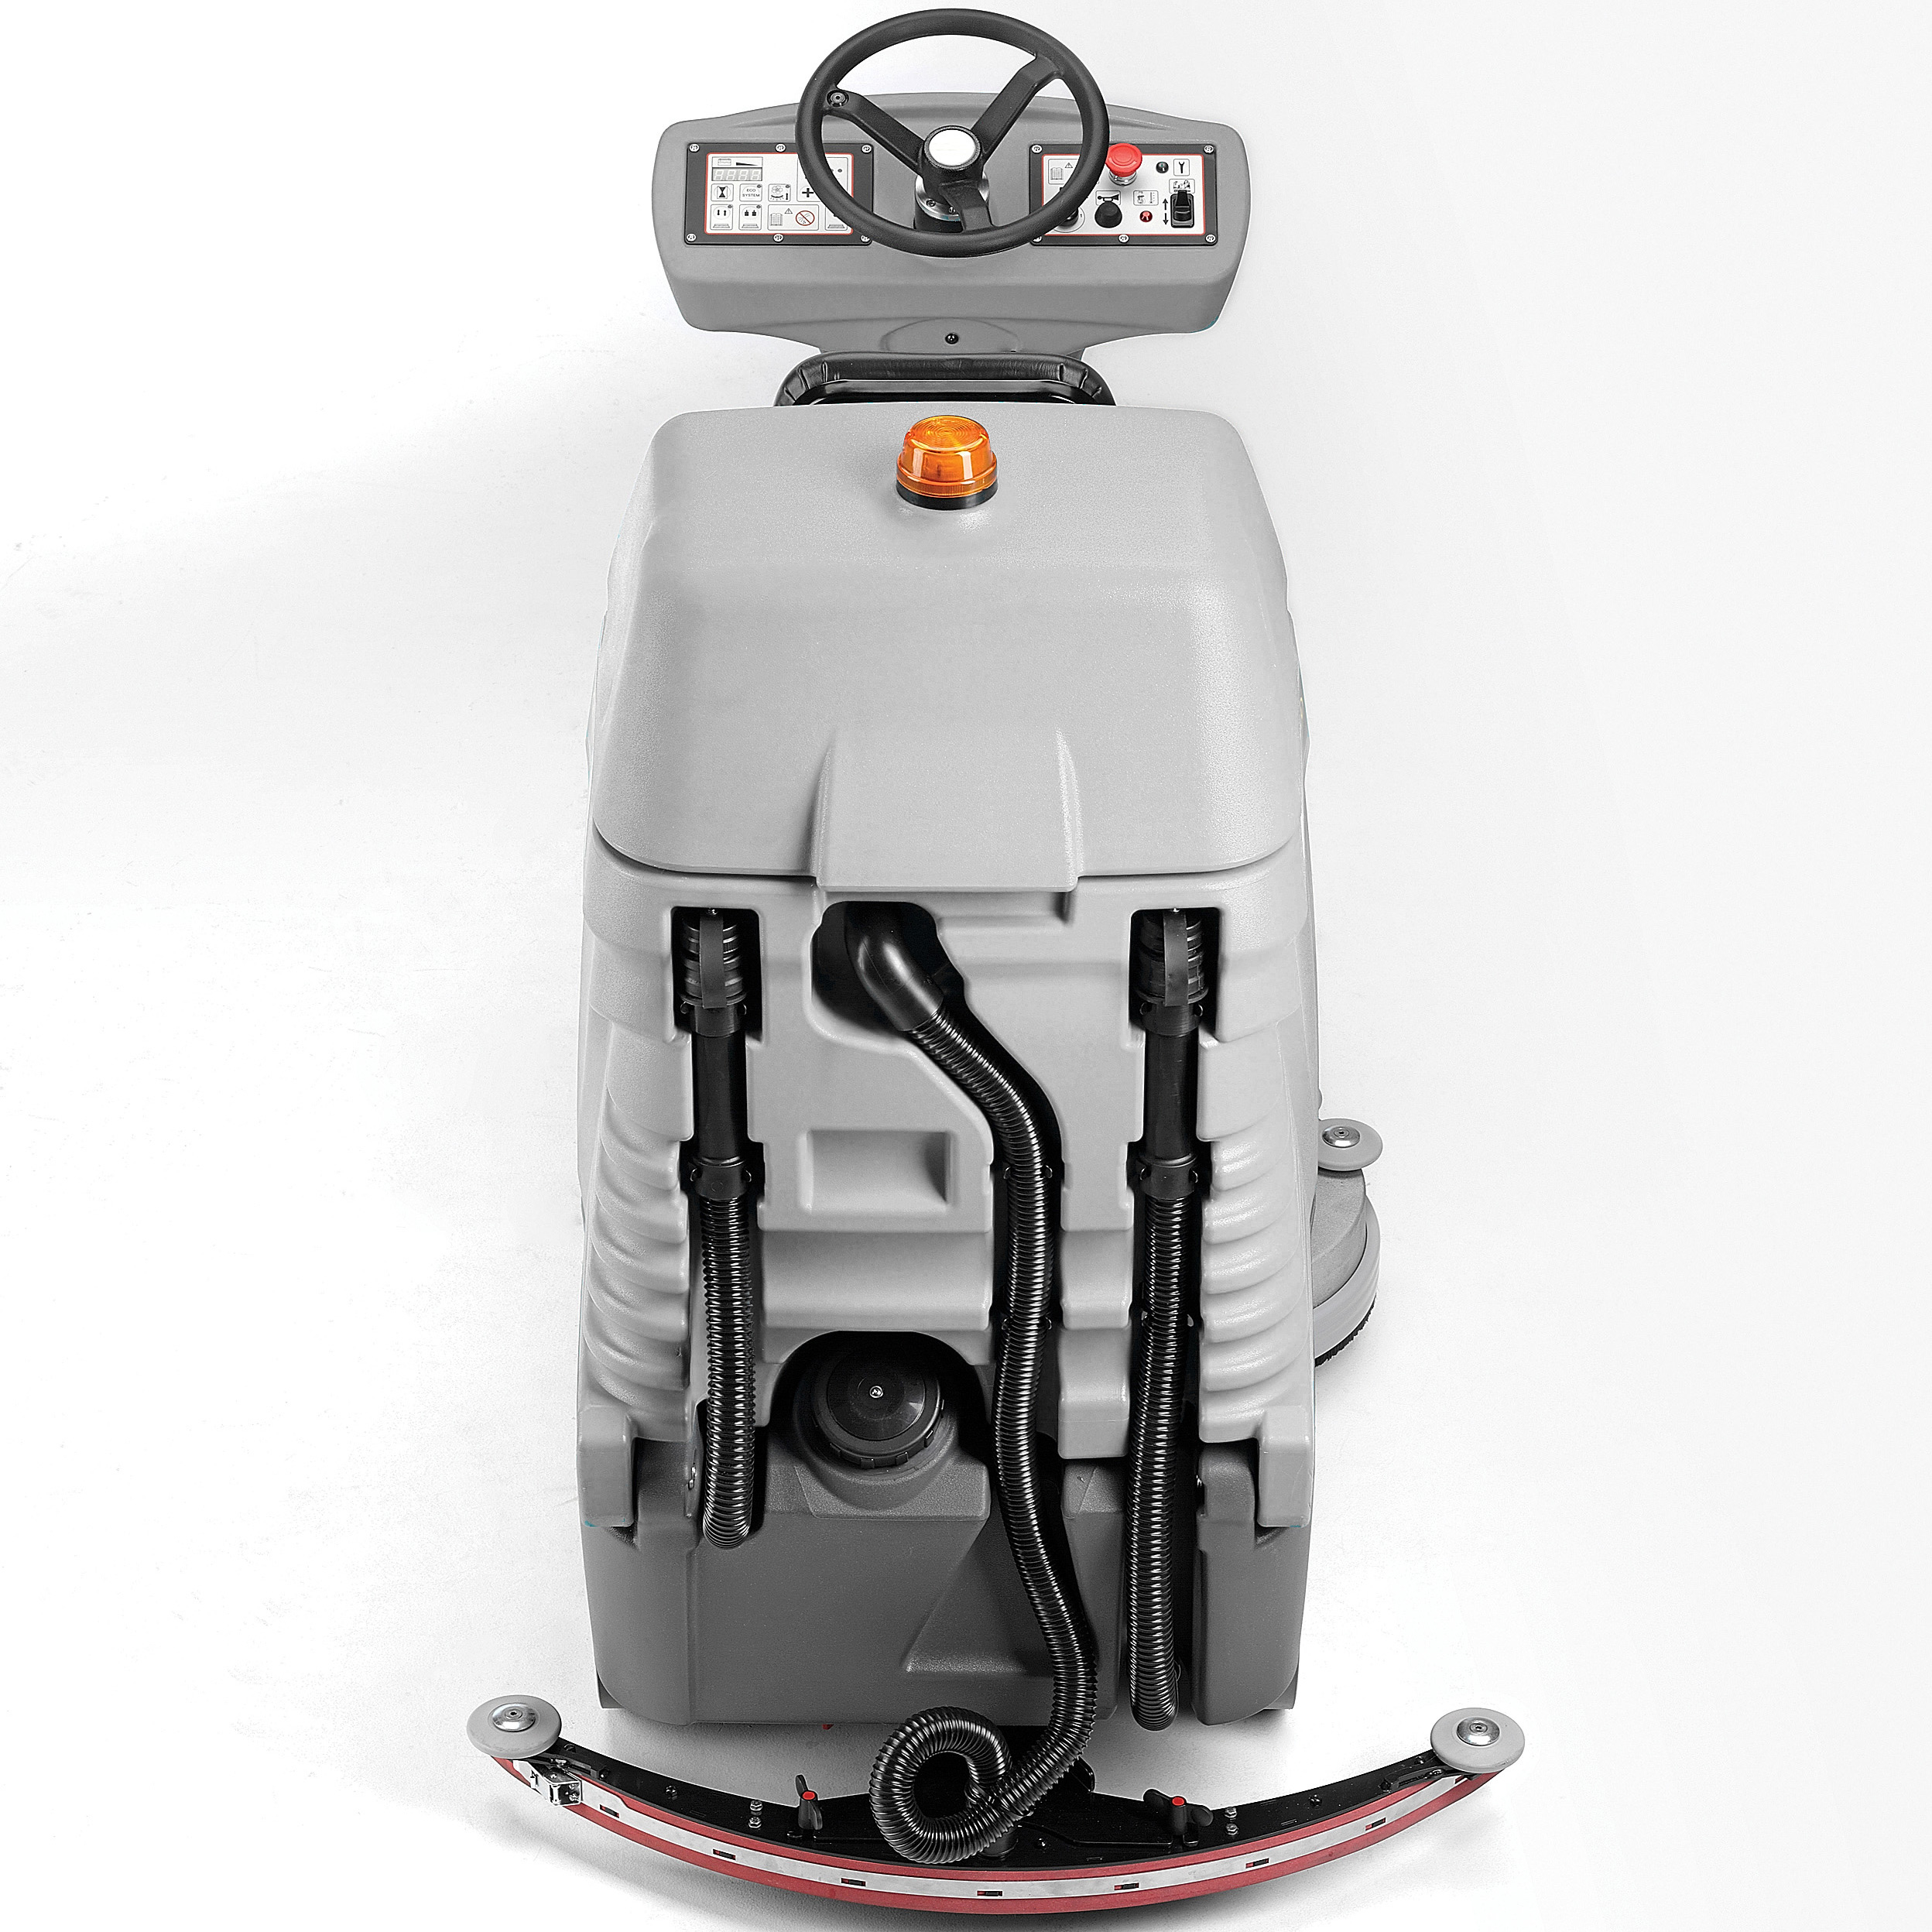 MACH M850 RIDE ON AUTOSCRUBBER EASY TO EMPTY